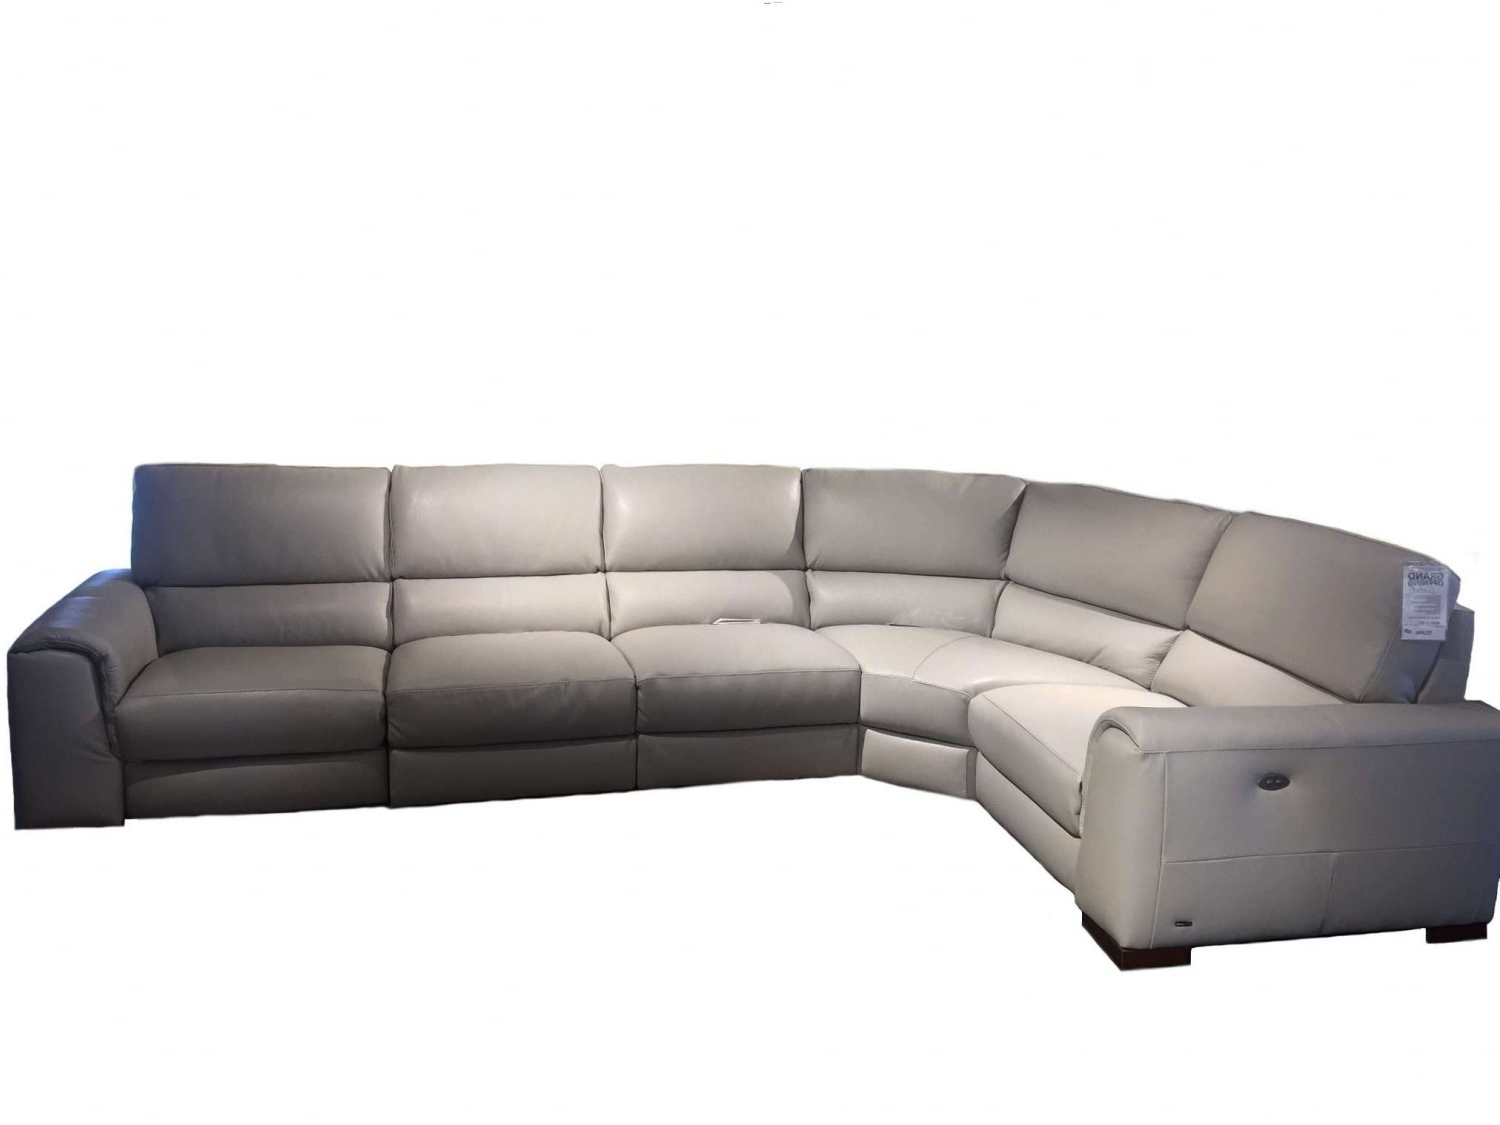 Kelowna Sectional Sofas In Famous Natuzzi Editions Davide Leather Sectional (View 11 of 20)